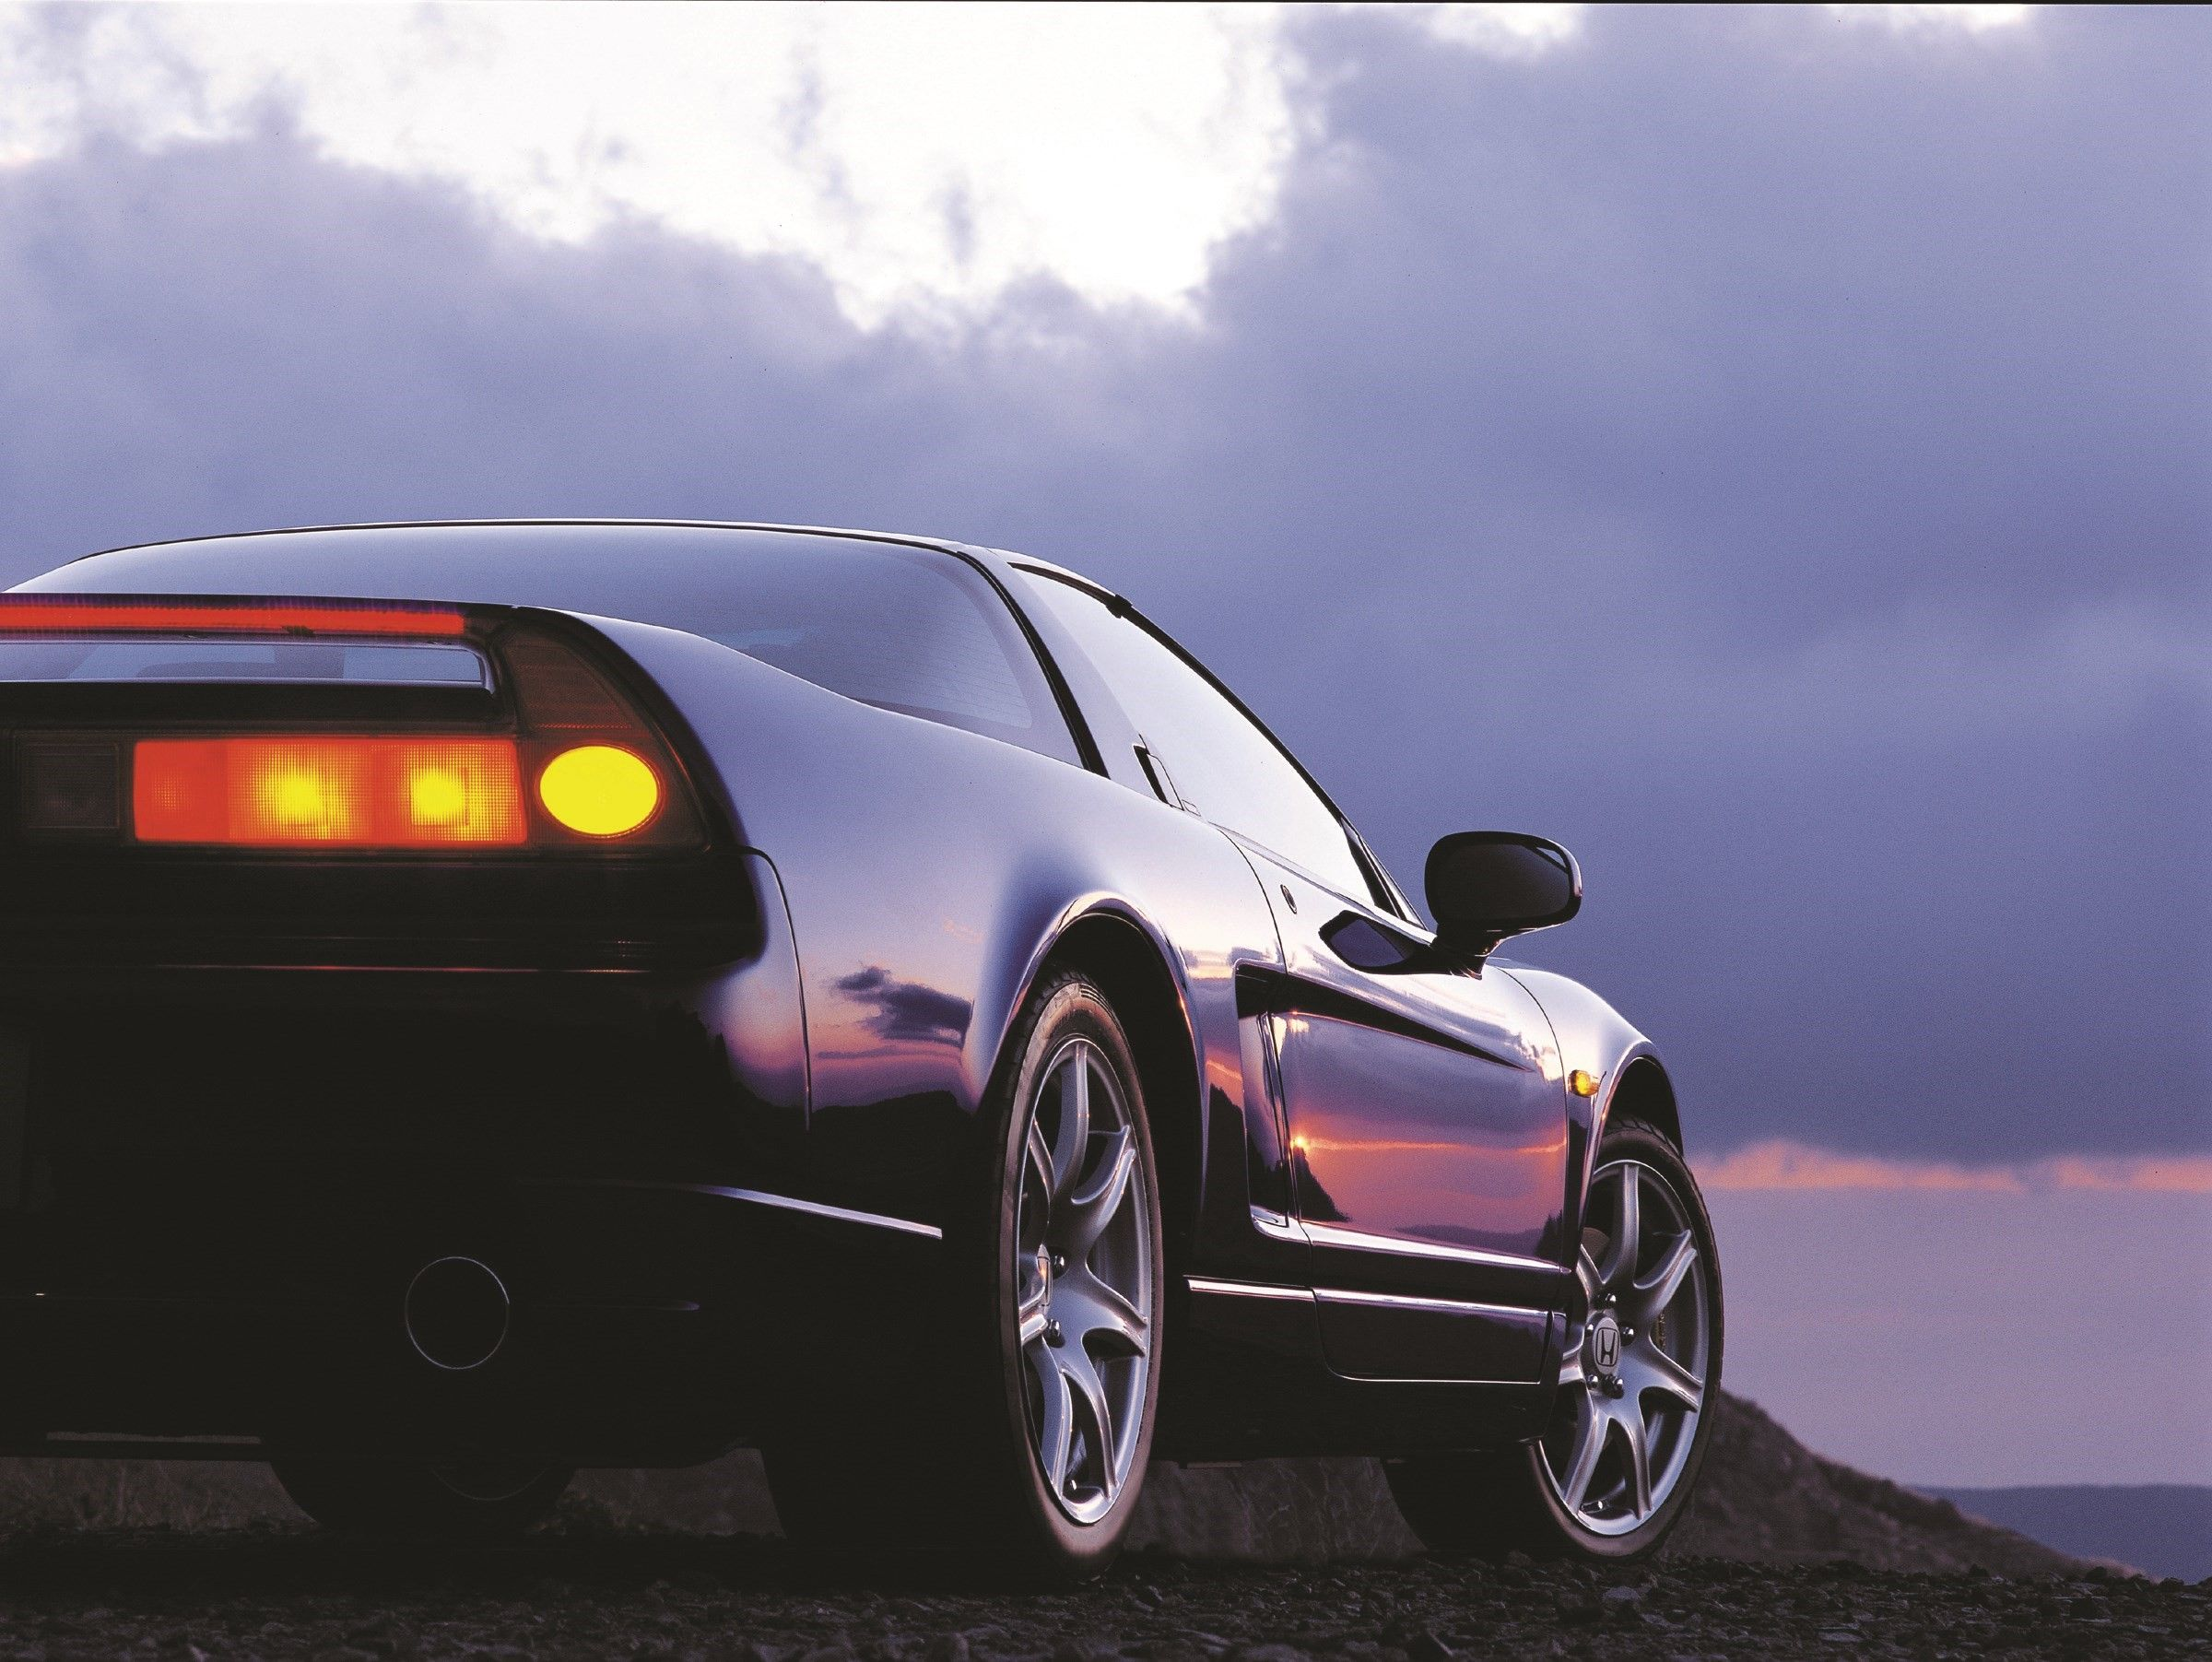 Honda NSX, first generation 19902005. 本田技研工業, カー, 車